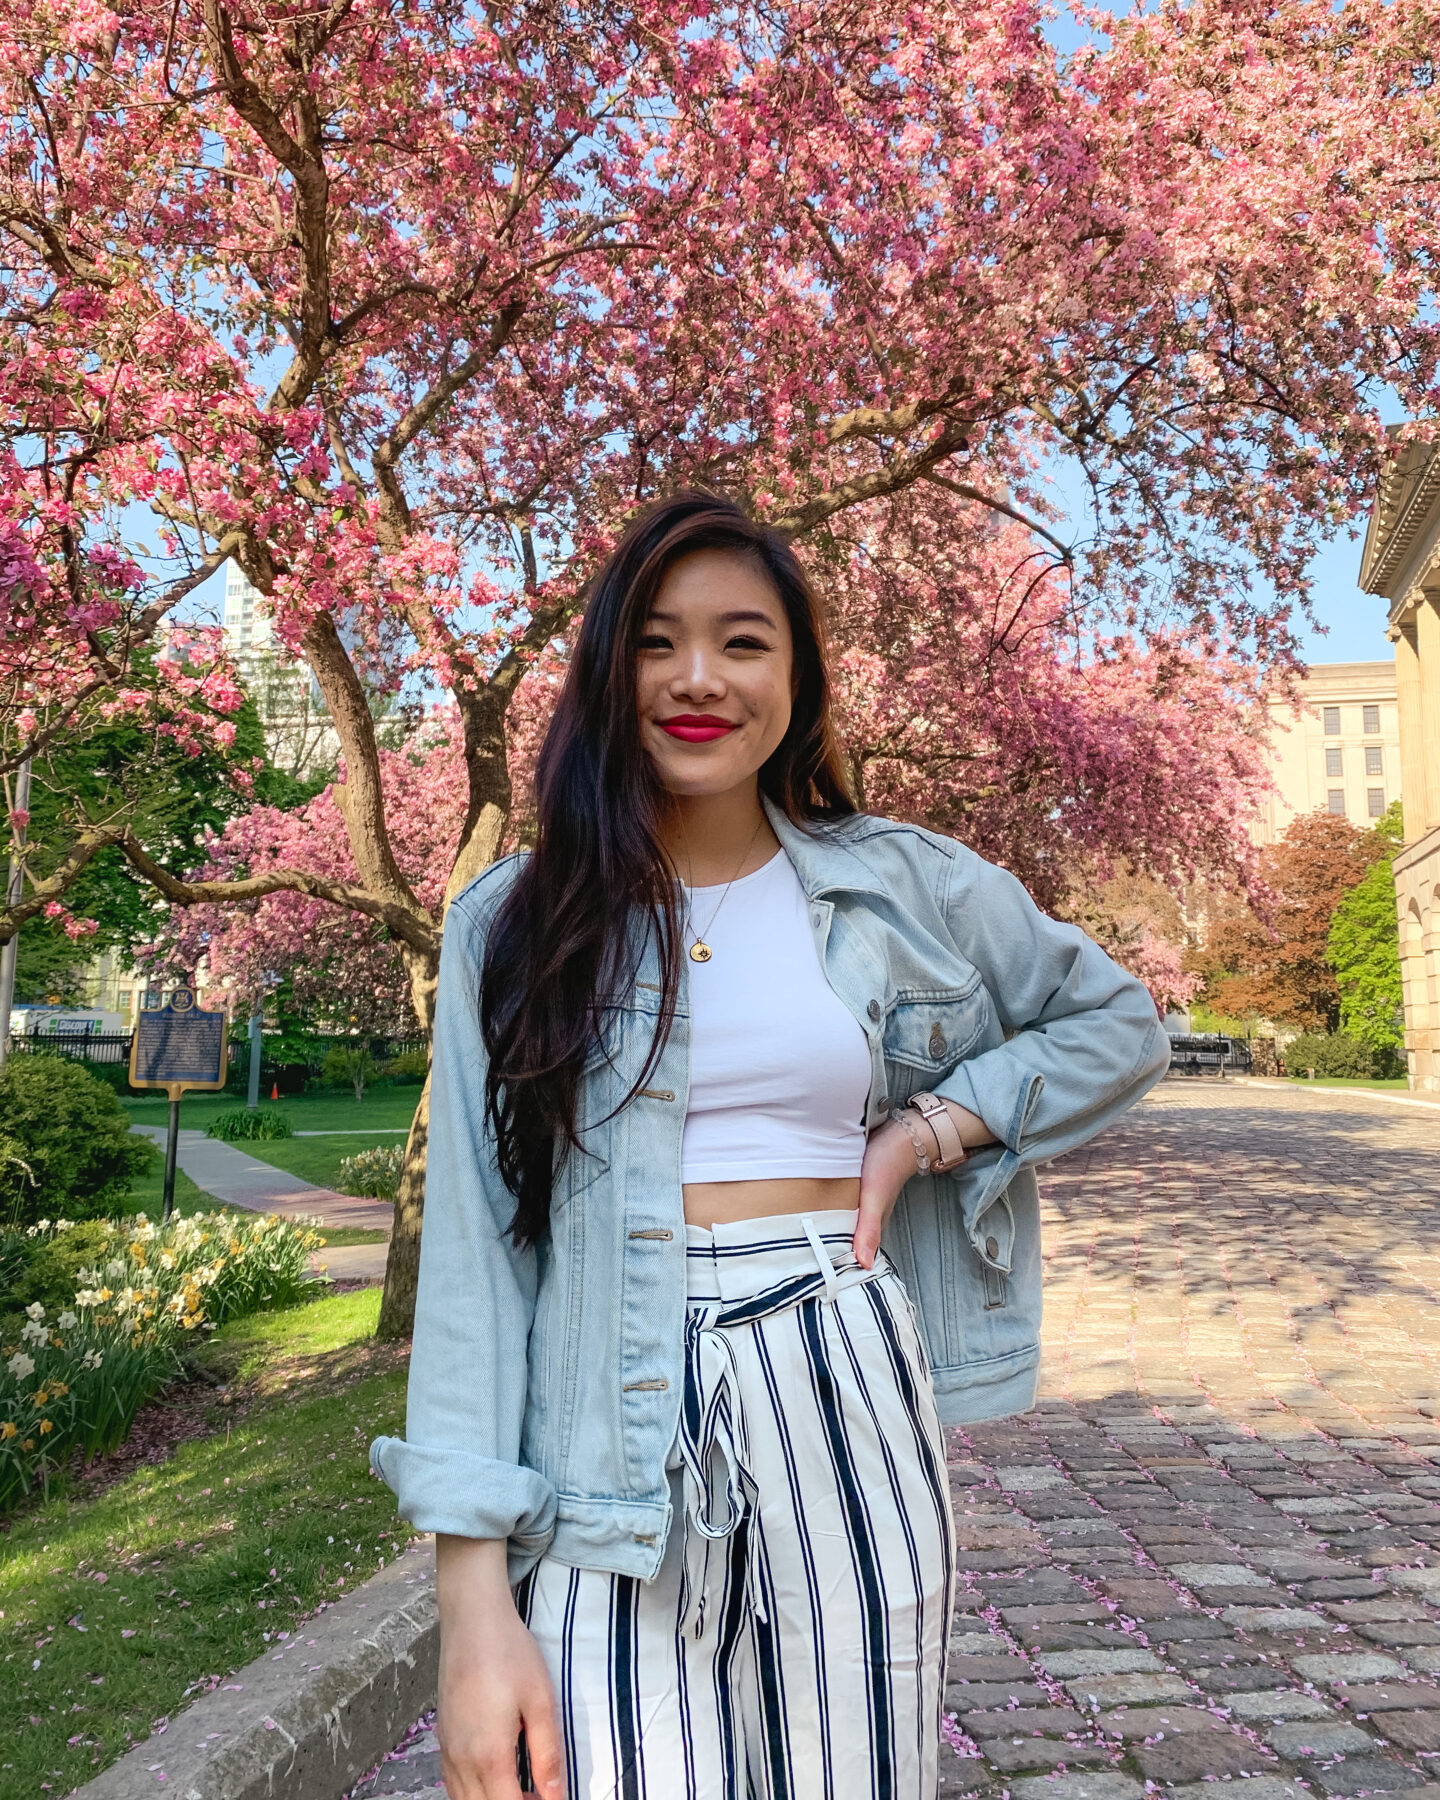 Spring flowers at Osgoode Hall in downtown Toronto | Levi's denim trucker jacket, American Apparel white high neck crop top, BB Dakota striped pants from Amazon Fashion